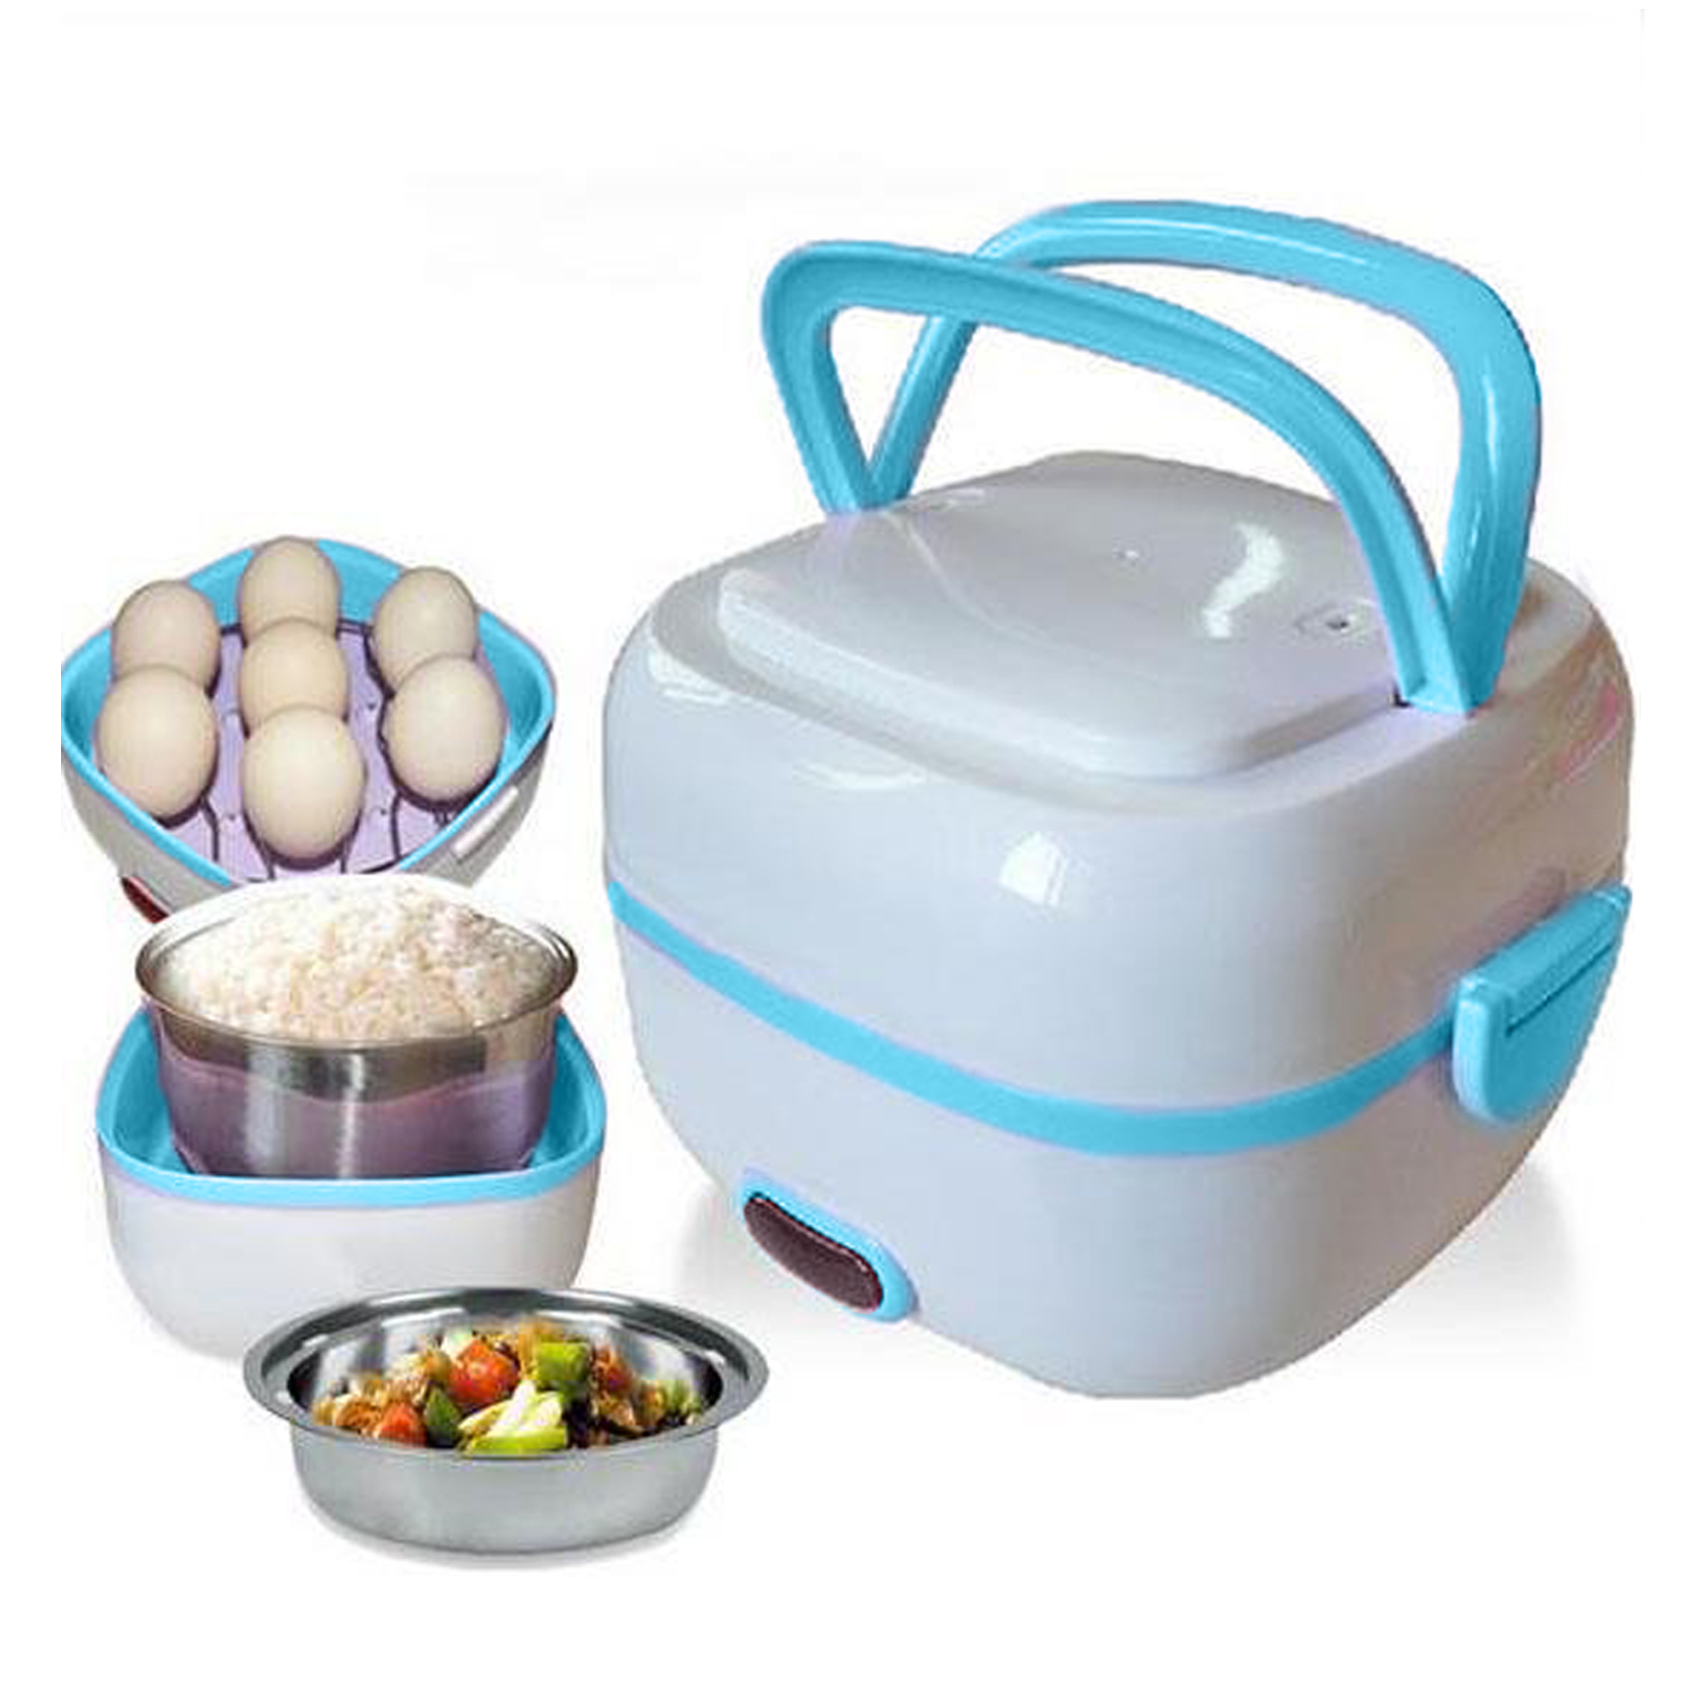 1 liter Multifunctional Mini Stainless Steel Electric Rice Cooker Rice Pot Rice Steamer Lunch Box - Blue